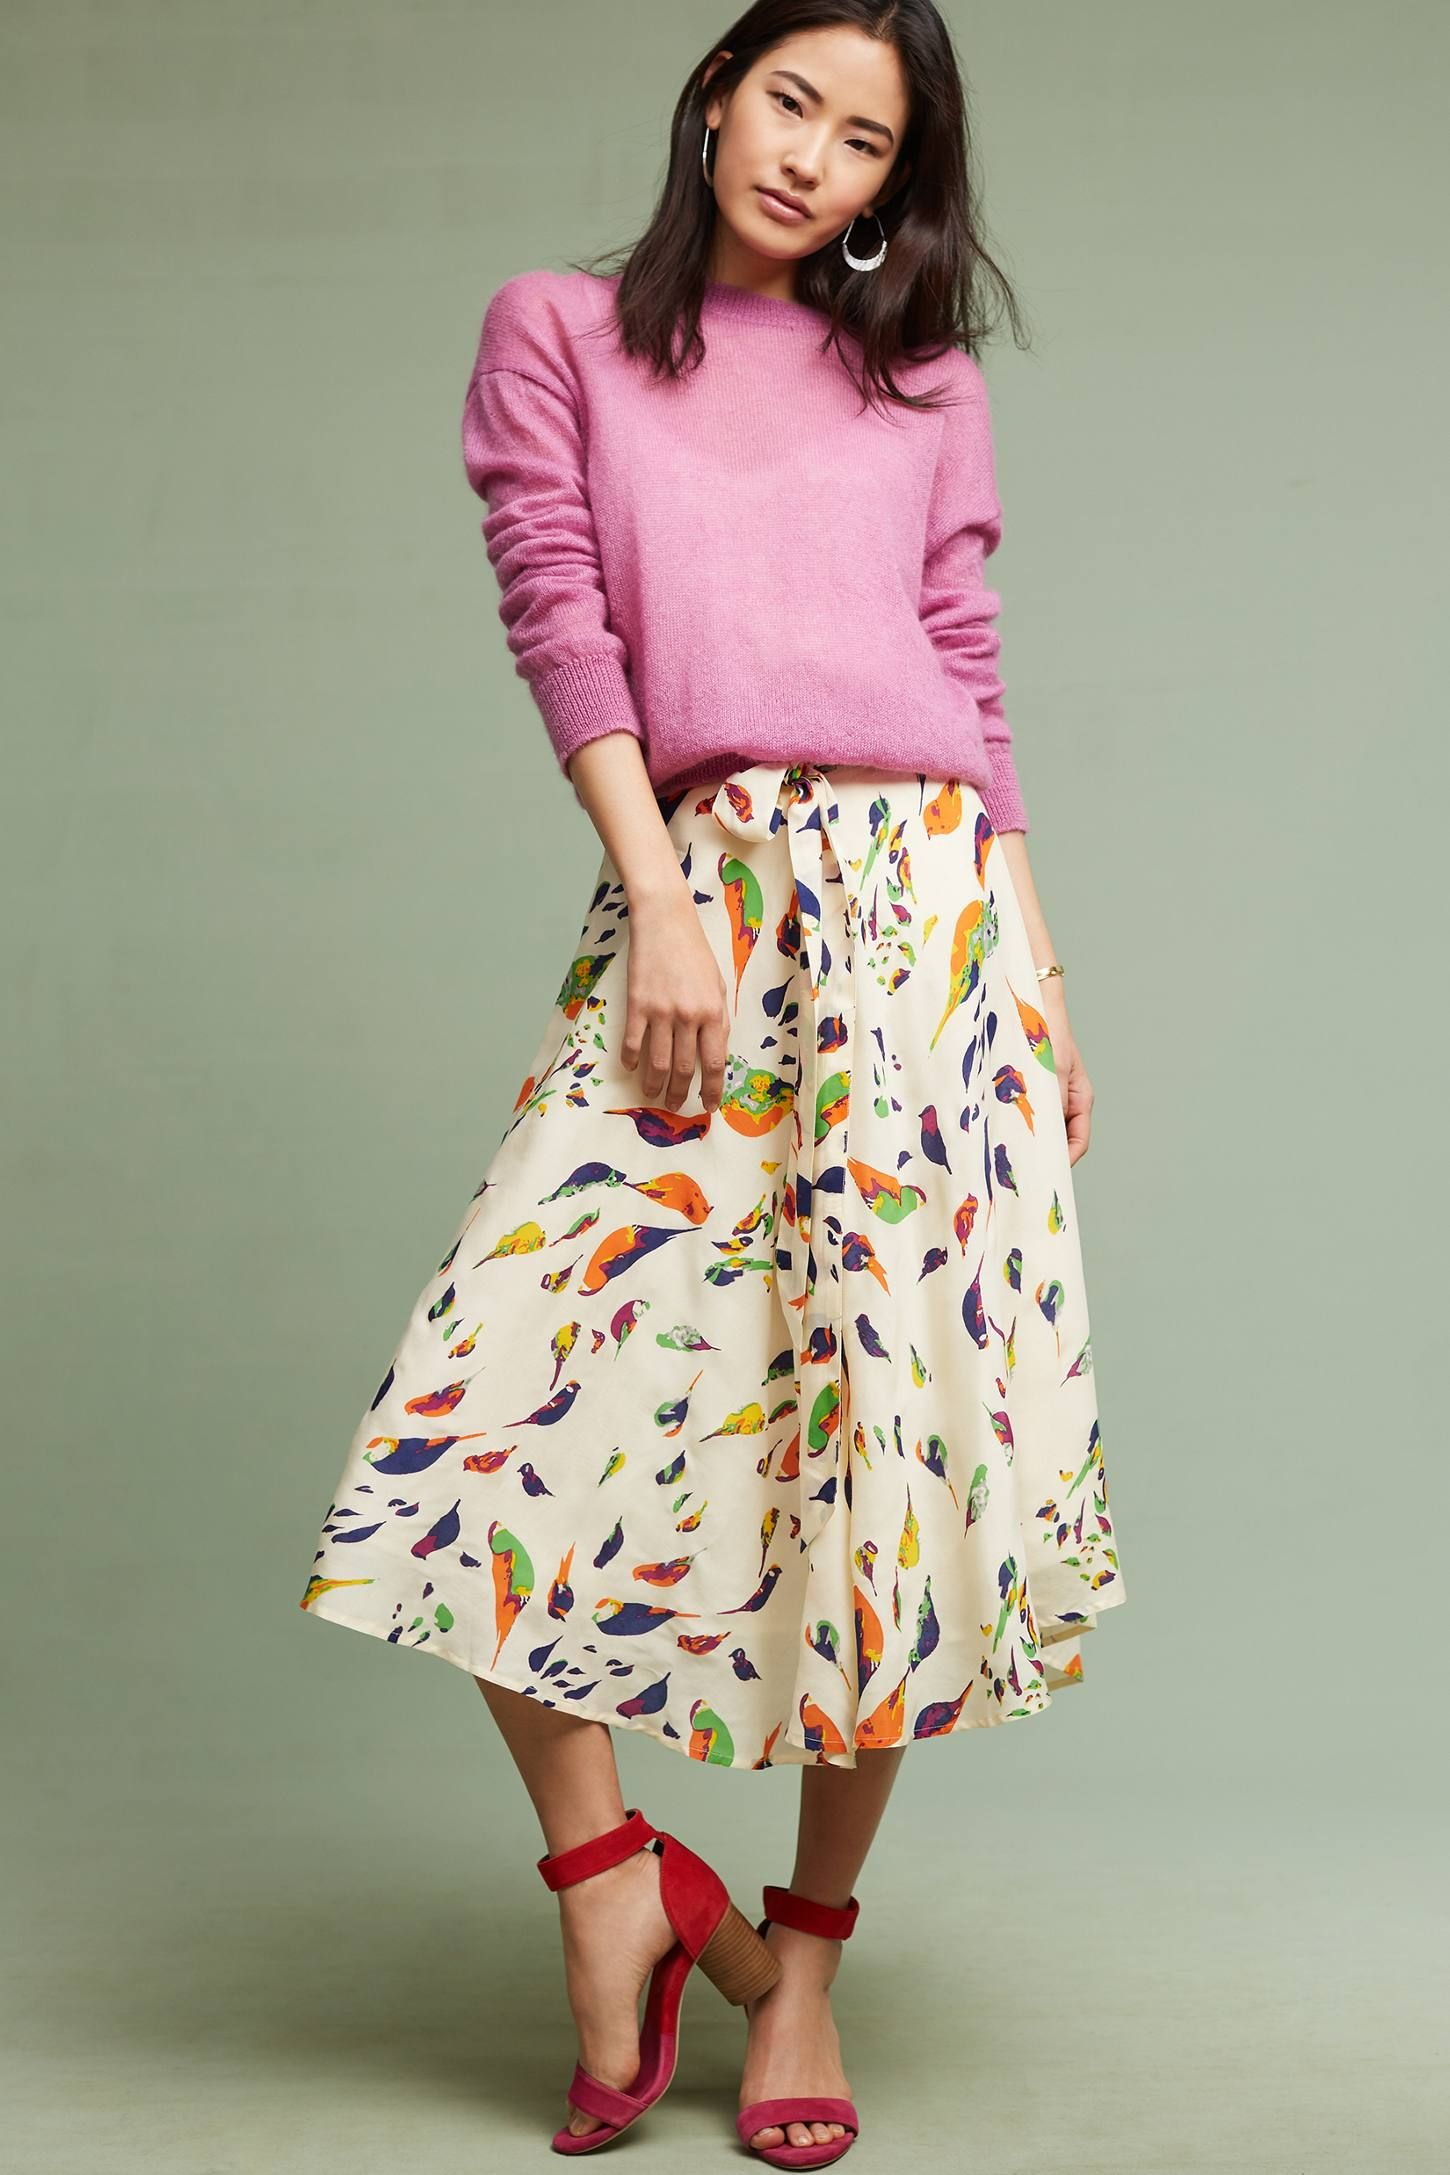 Tandy skirt shops the oujays and anthropologie